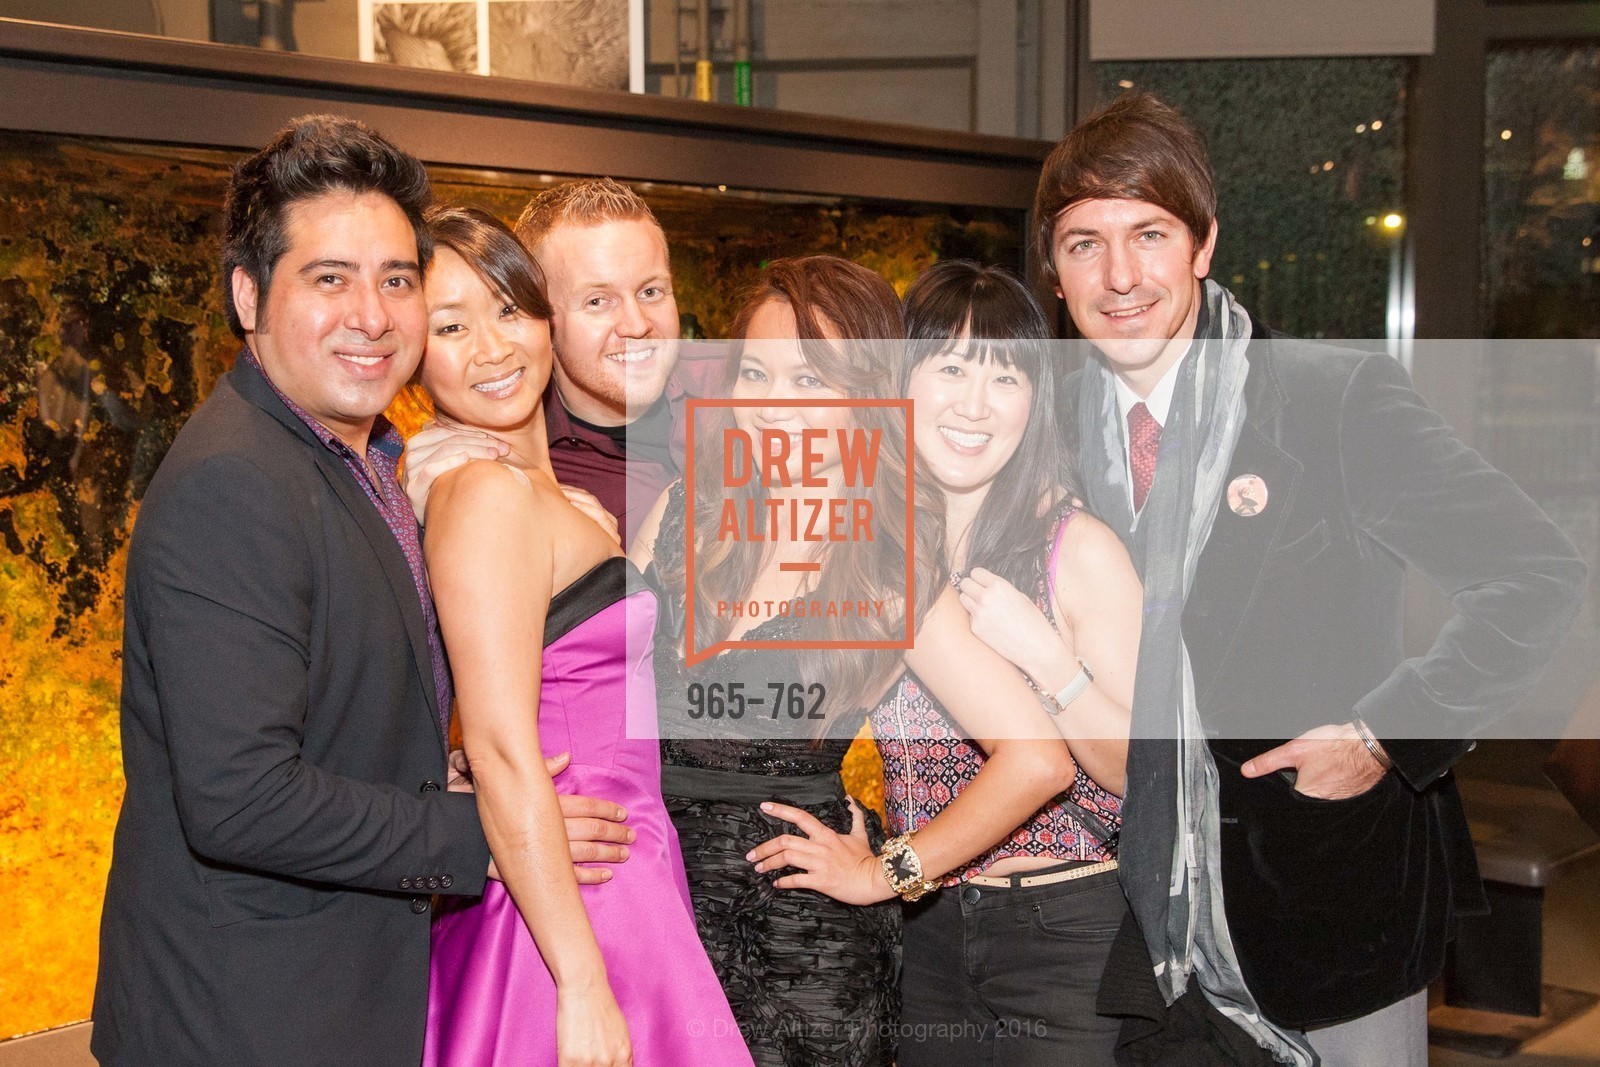 Daniel Alvarado, Kylie Foster, Chris Barlow, Monica Dicarpio, Laura Miyakawa, Johnny Fontaine, The 2016 Exploratorium Science of Cocktails, Exploratorium. Pier 15, January 22nd, 2016,Drew Altizer, Drew Altizer Photography, full-service agency, private events, San Francisco photographer, photographer california